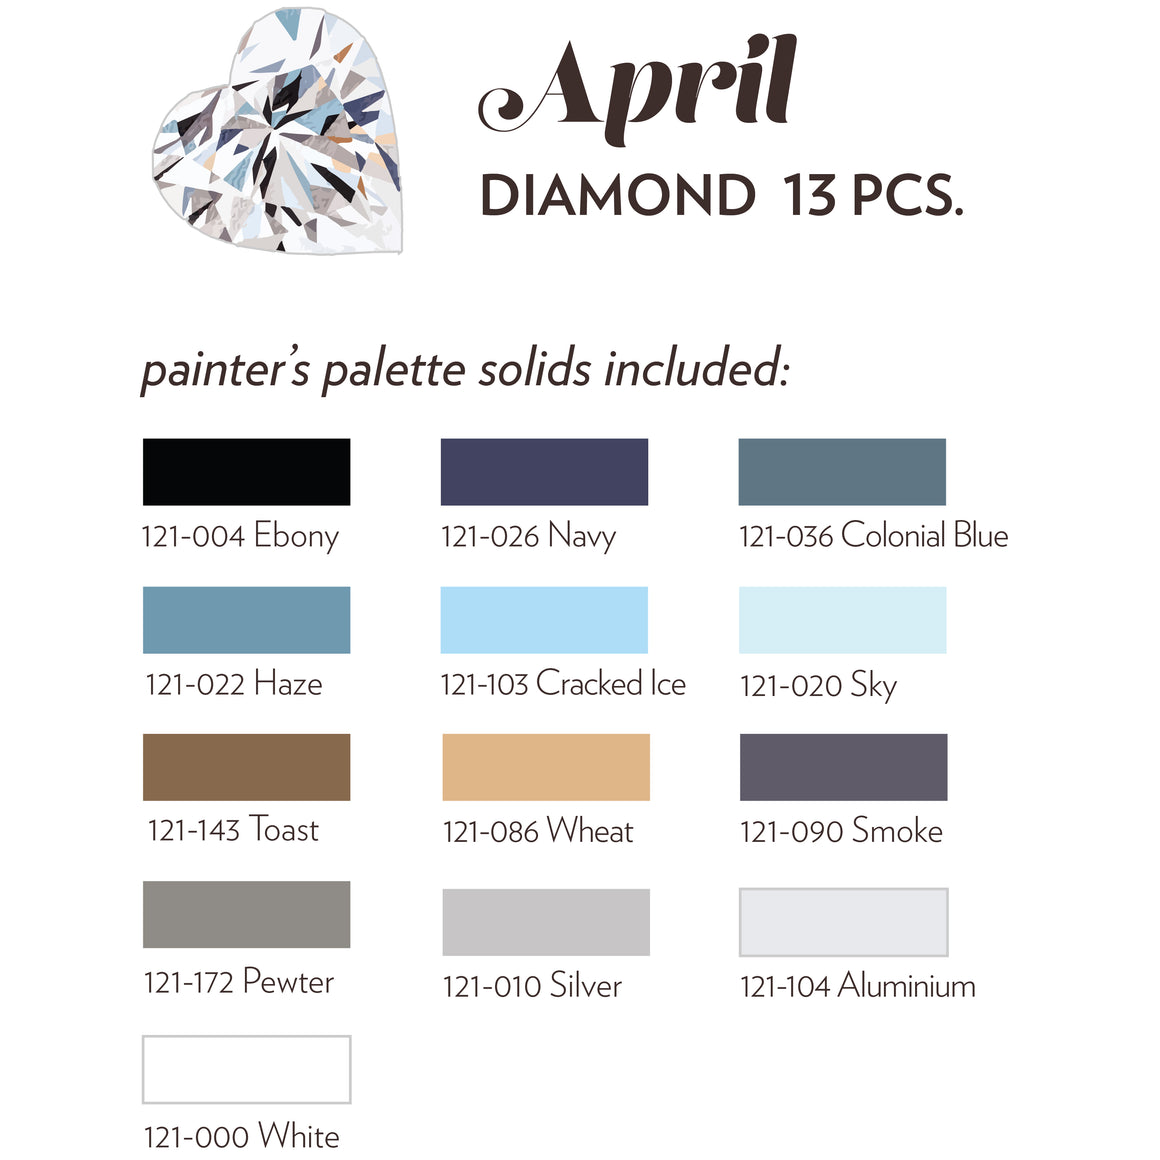 April Birthstone- Diamond